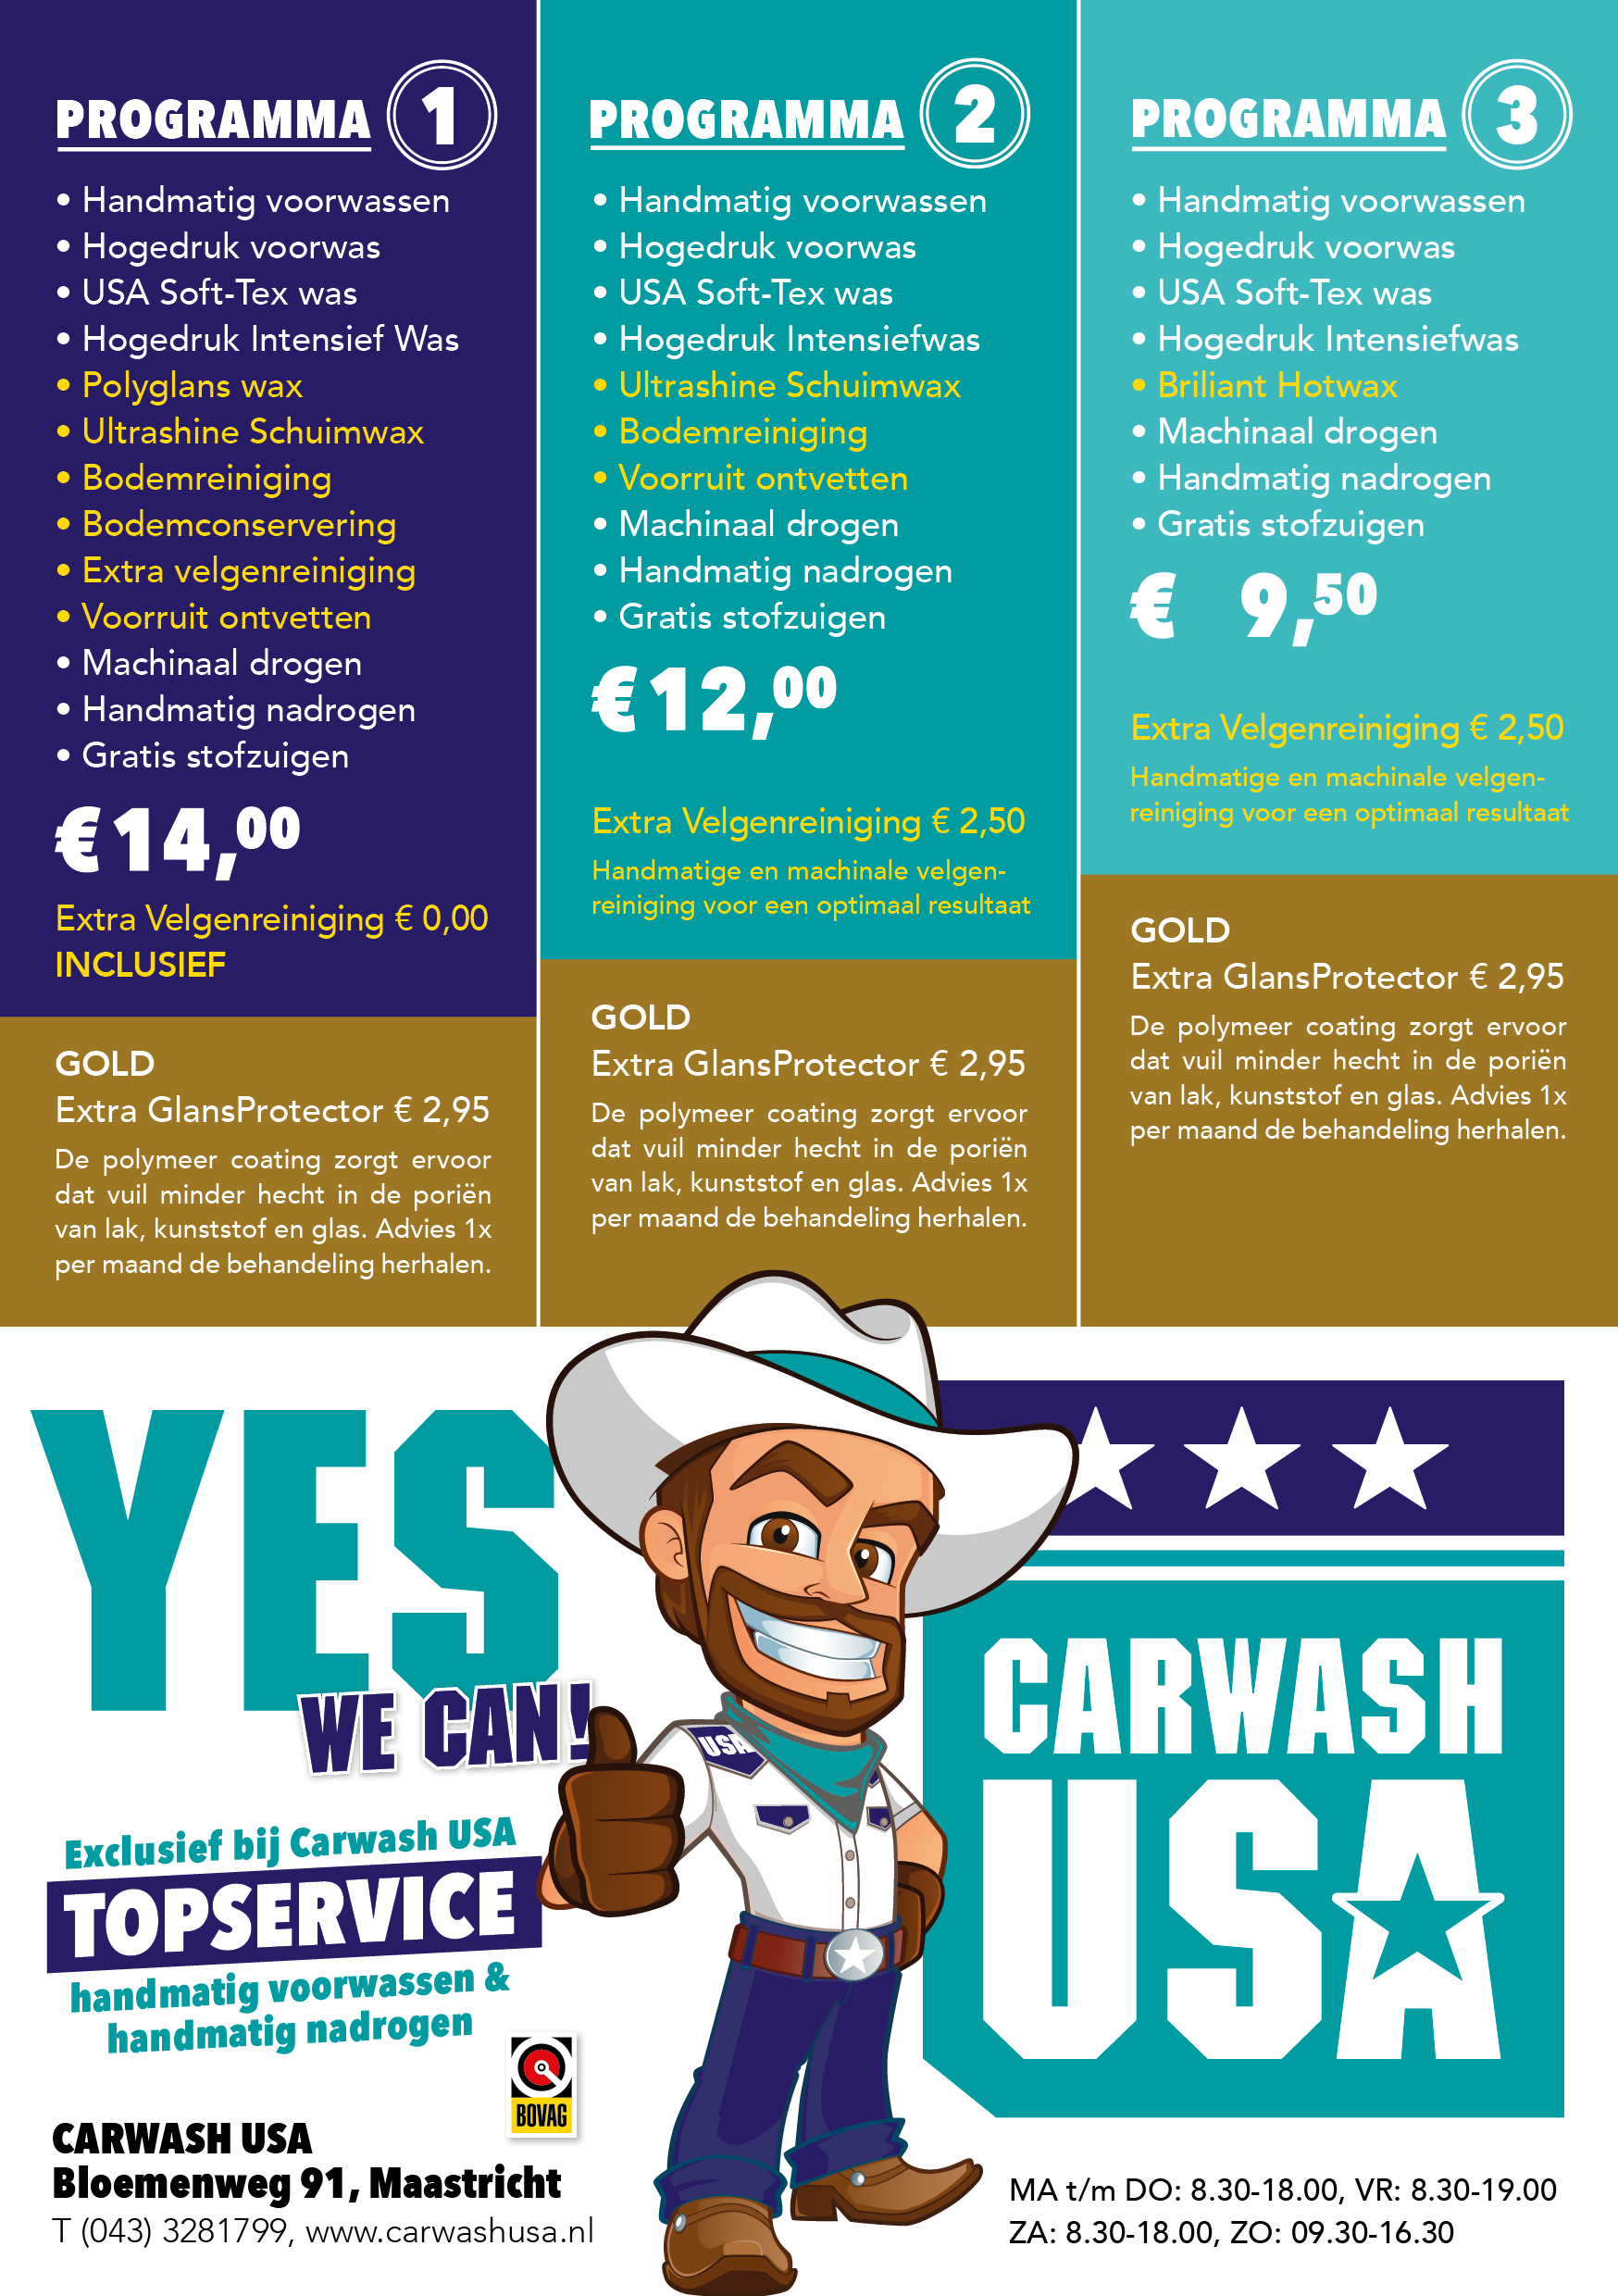 Carwash USA flyer programma's 2018